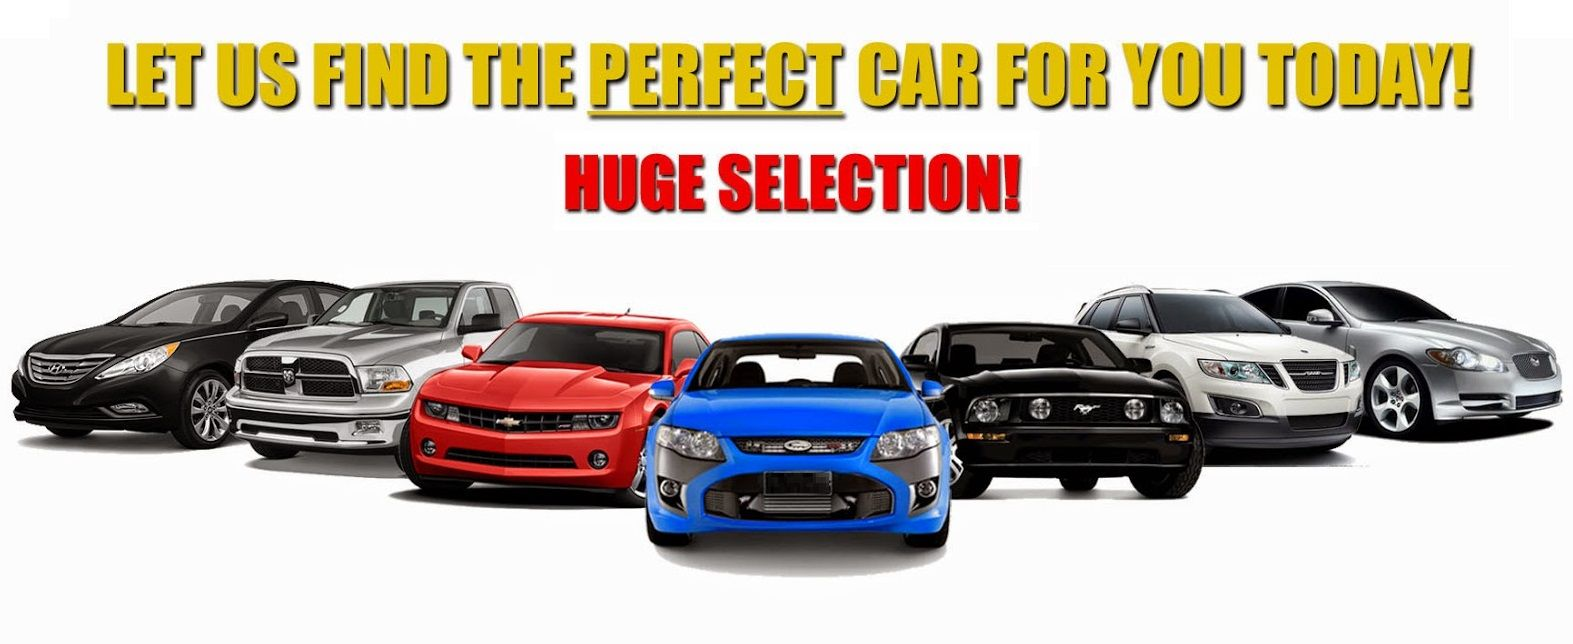 Top Quality Cheap Used Cars For Sale Today Today you can get great ...